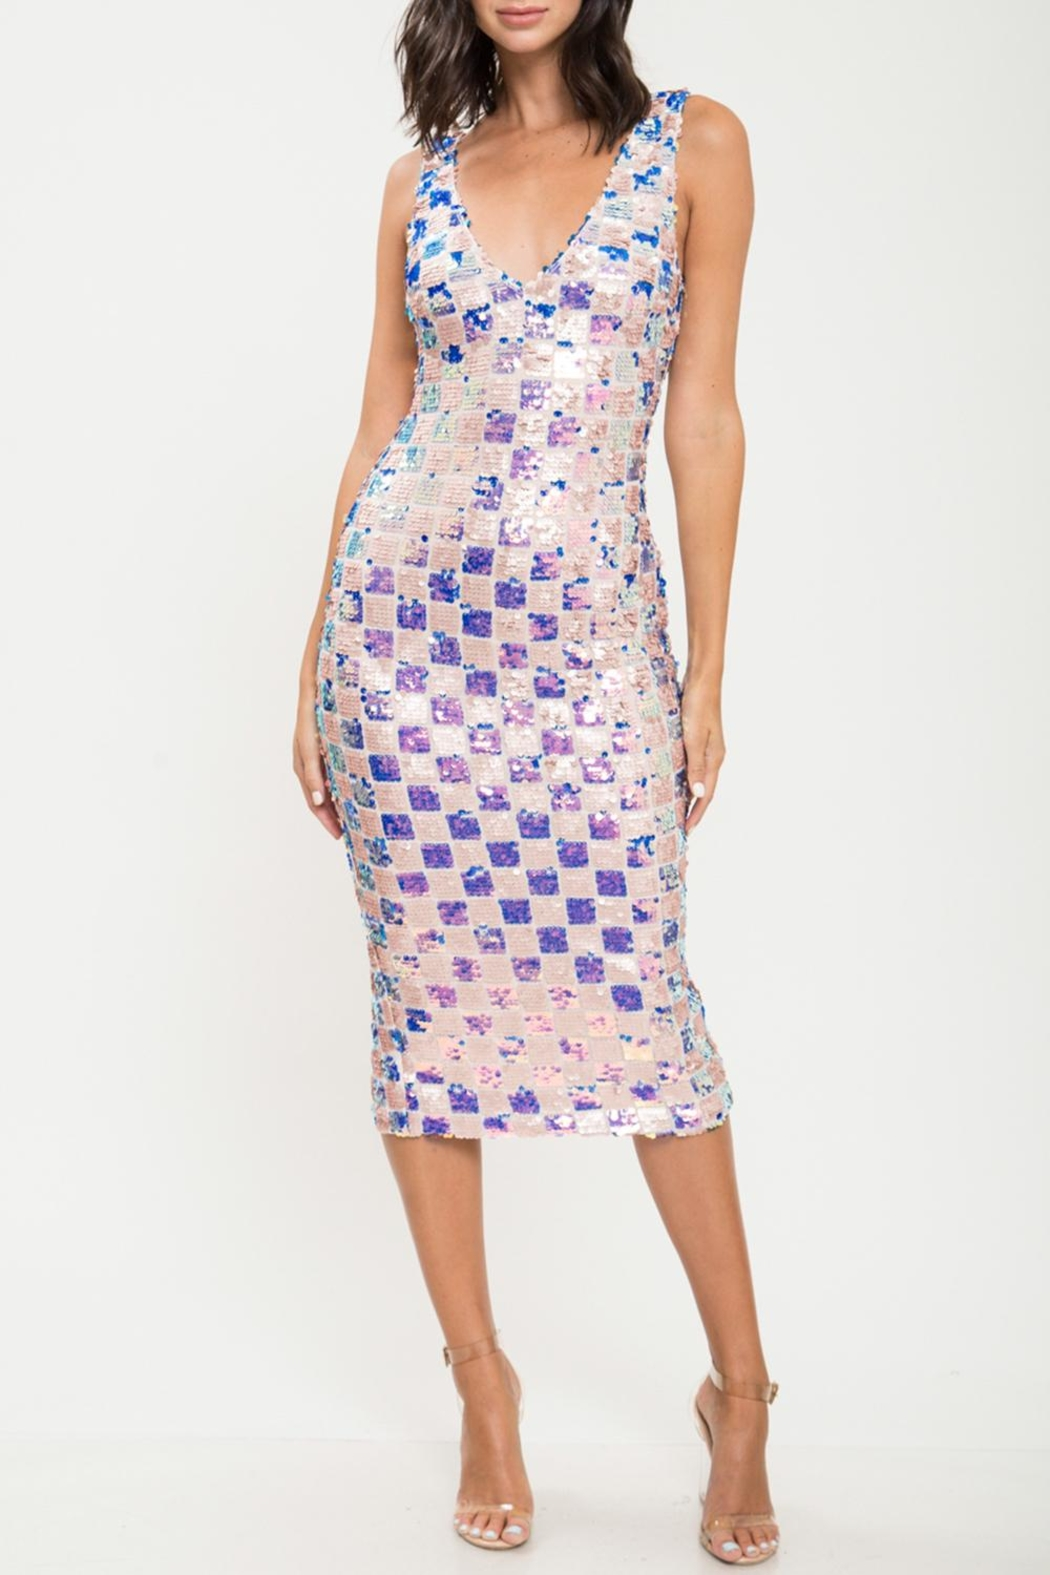 9ebb9480fa84 L atiste Checkered Sequin Dress from Florida by Apricot Lane St ...